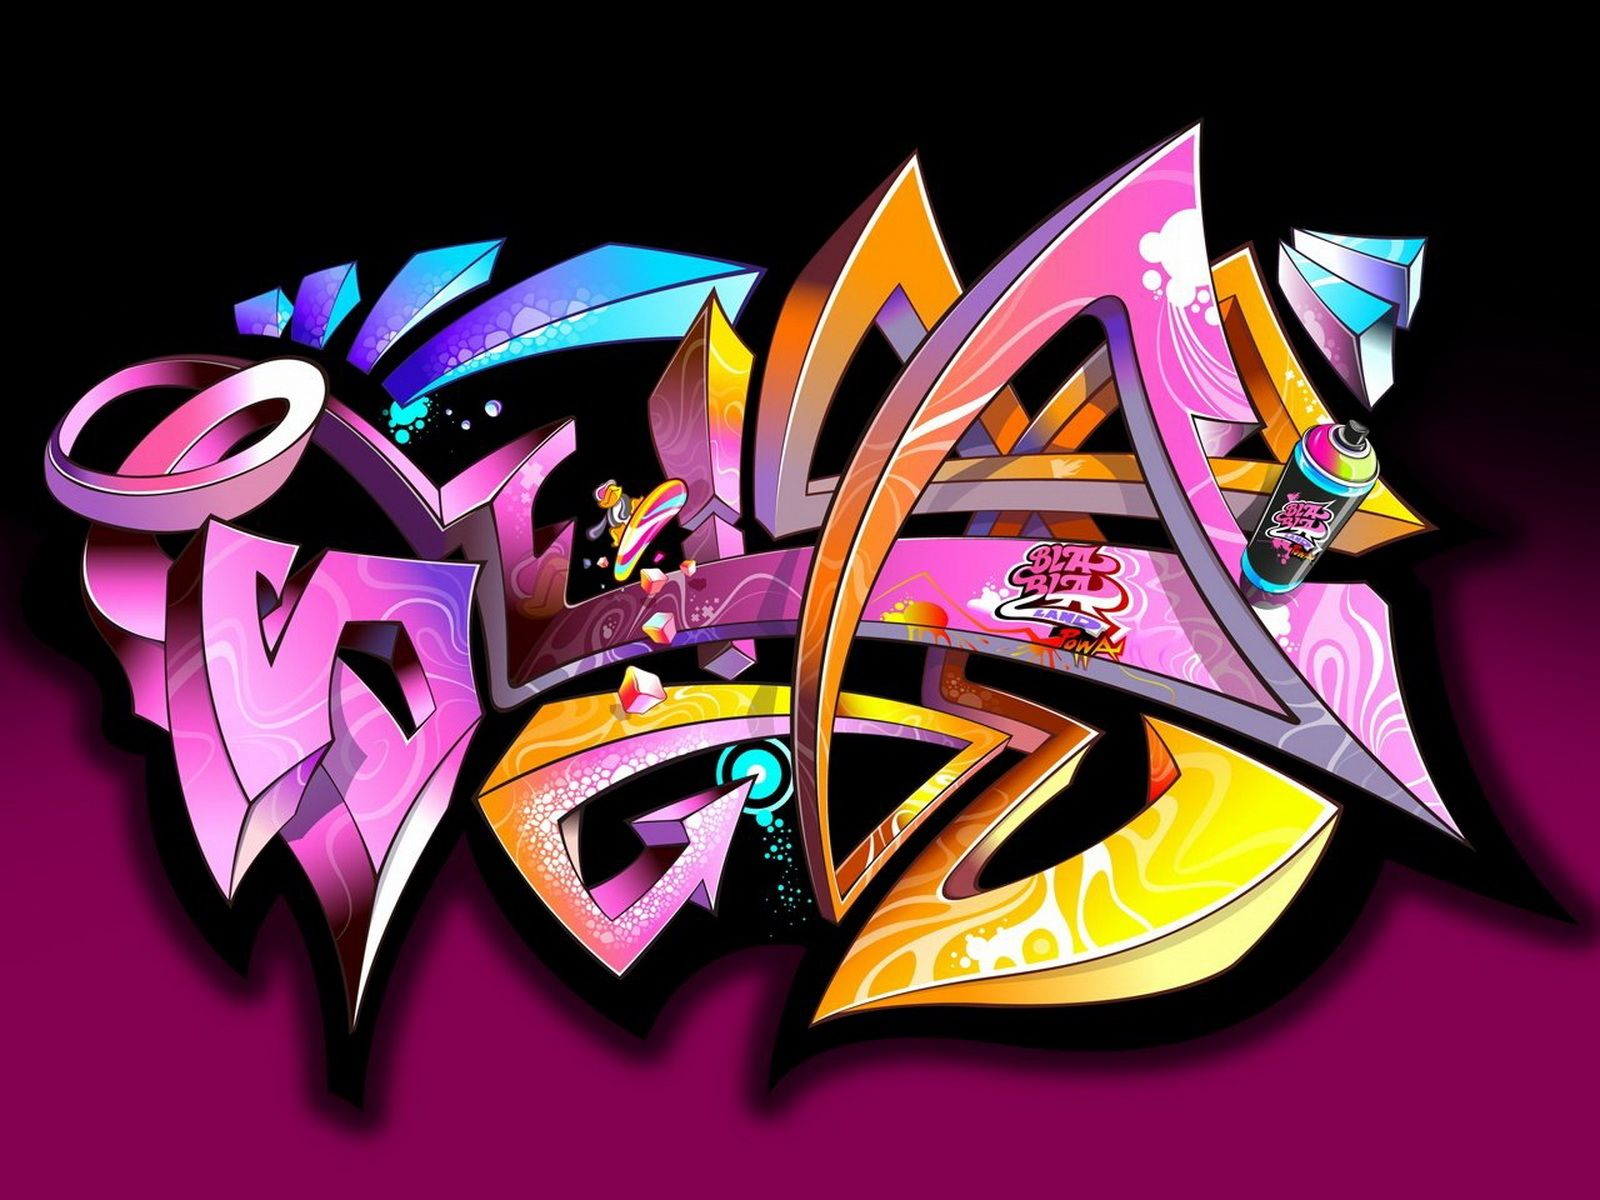 search results for graffiti tag wallpaper maker apk adorable wallpapers